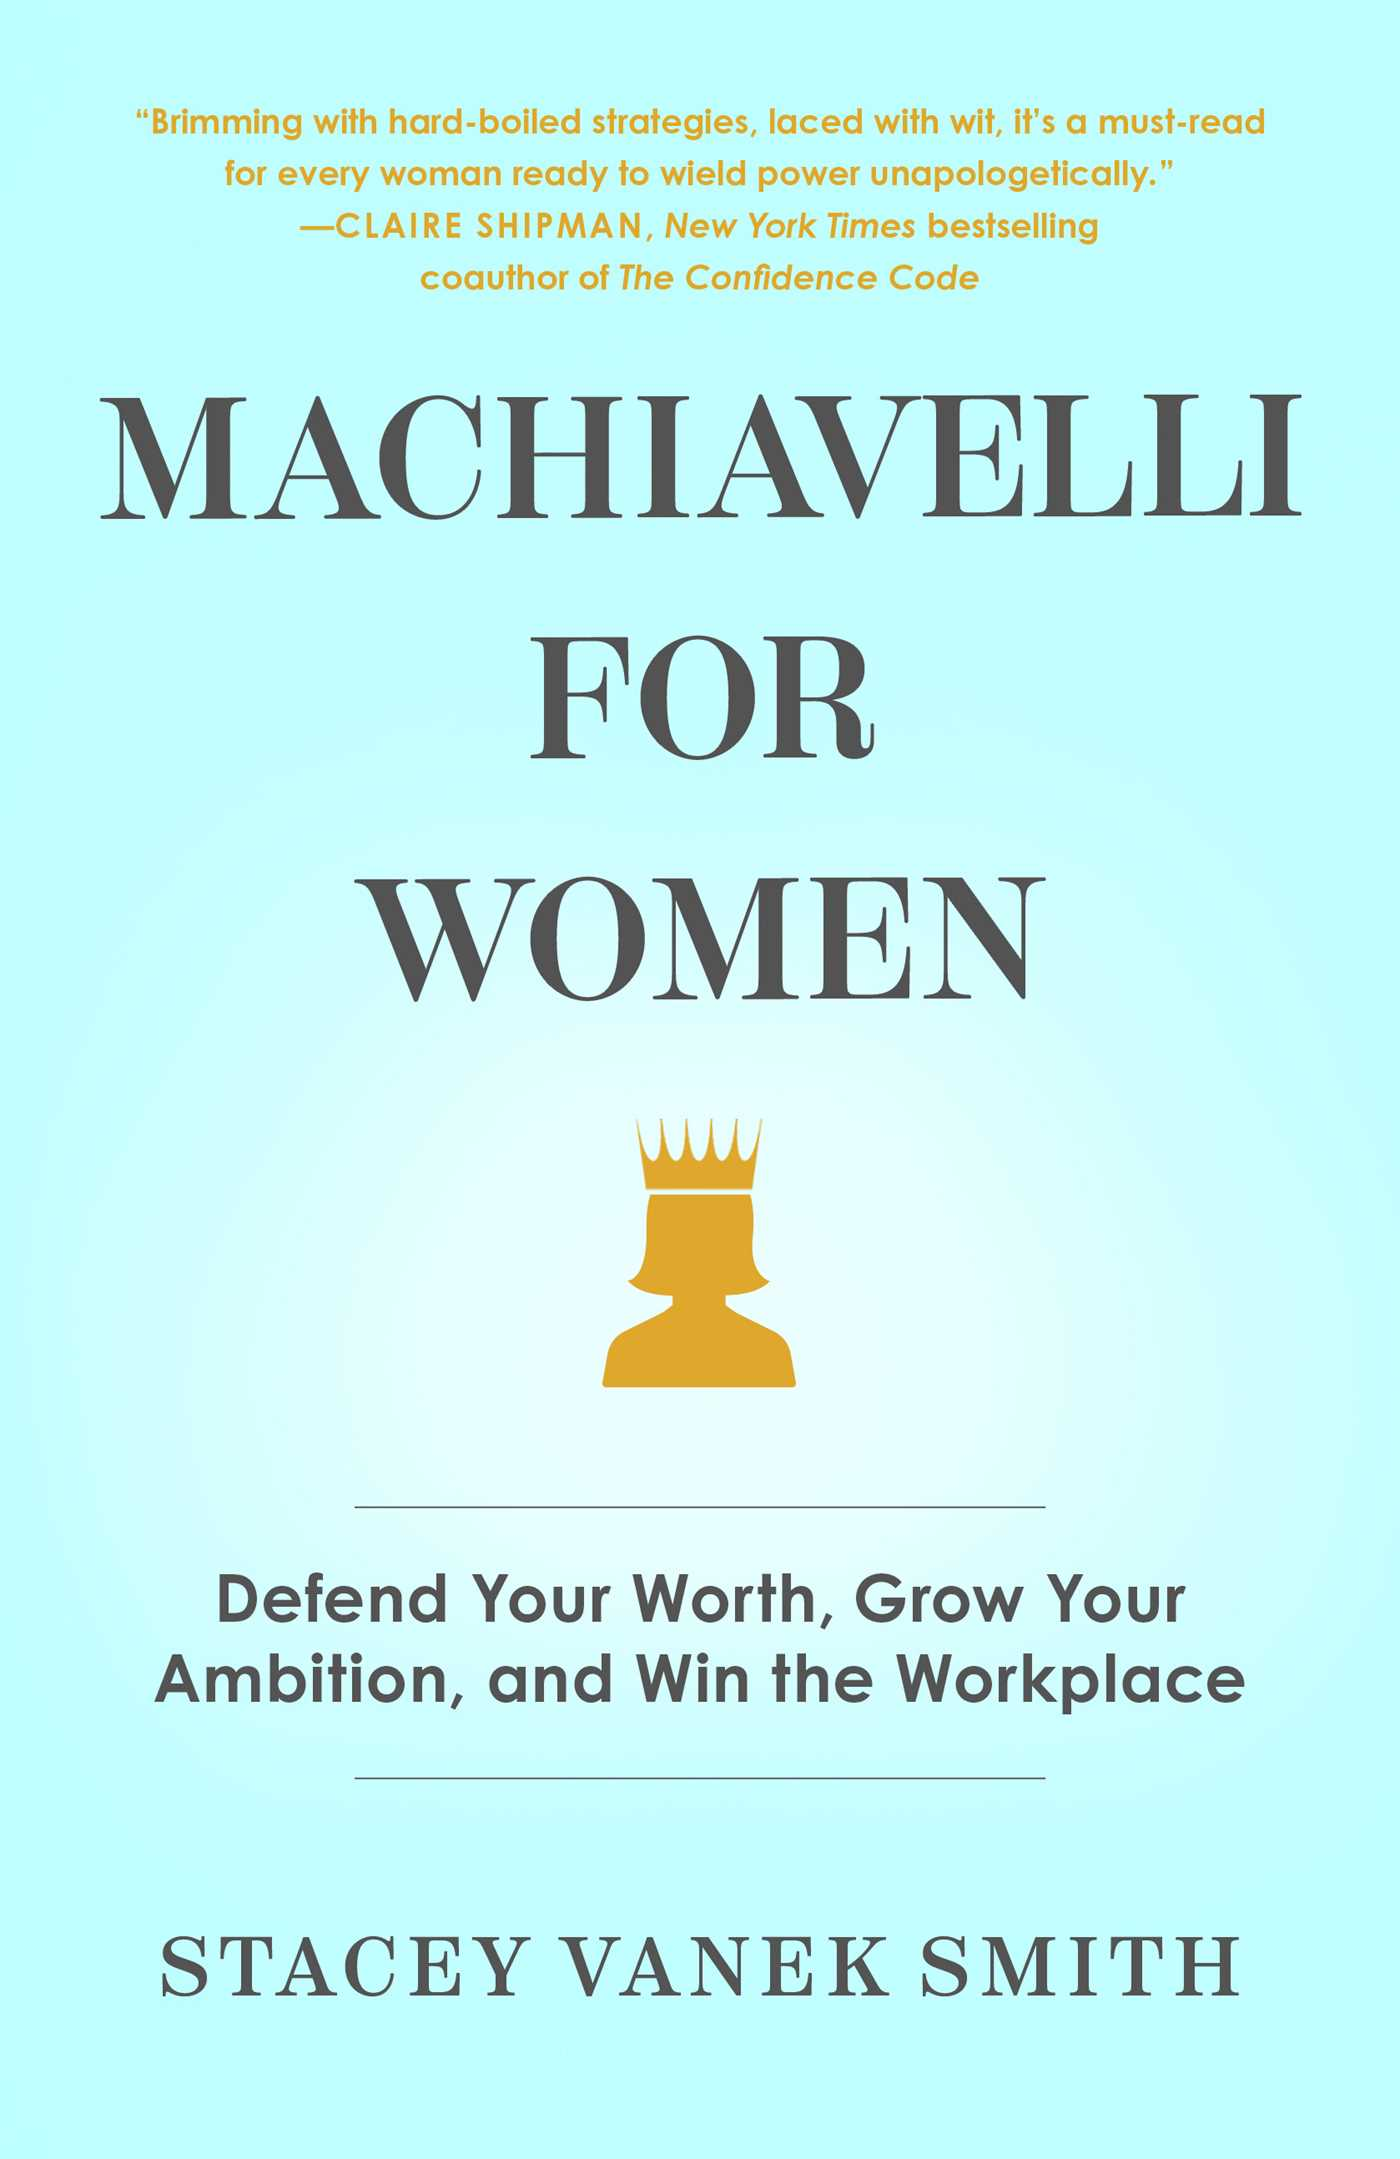 Book Launch: Machiavelli for Women by Stacey Vanek Smith in conversation with Cardiff Garcia